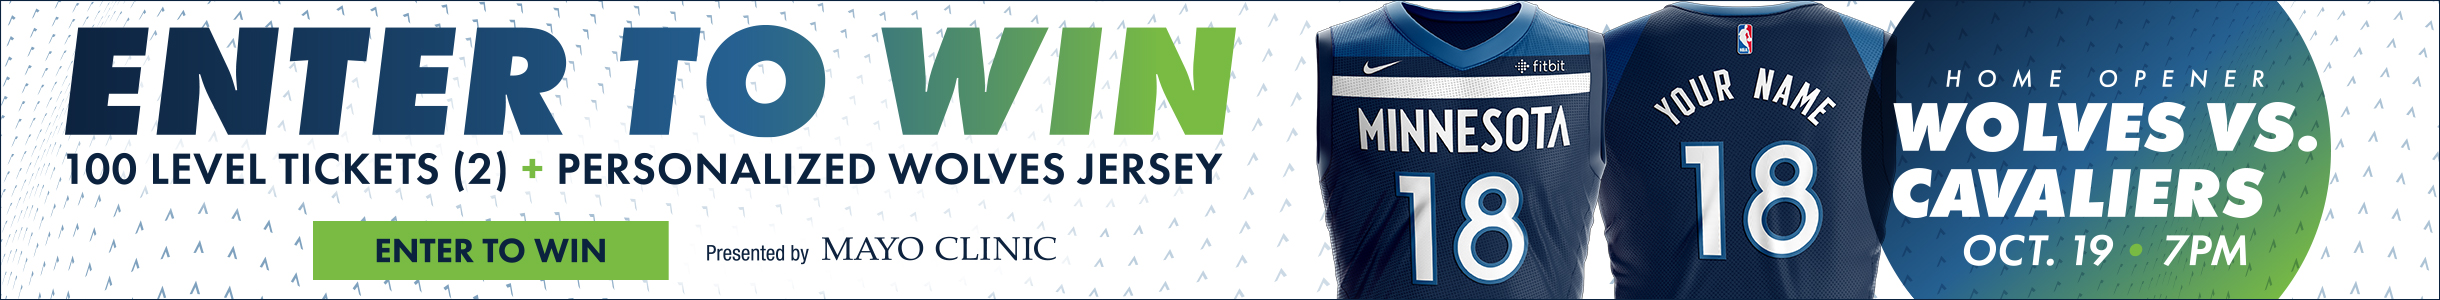 Enter To Win Two Tickets and a Personalized Jersey